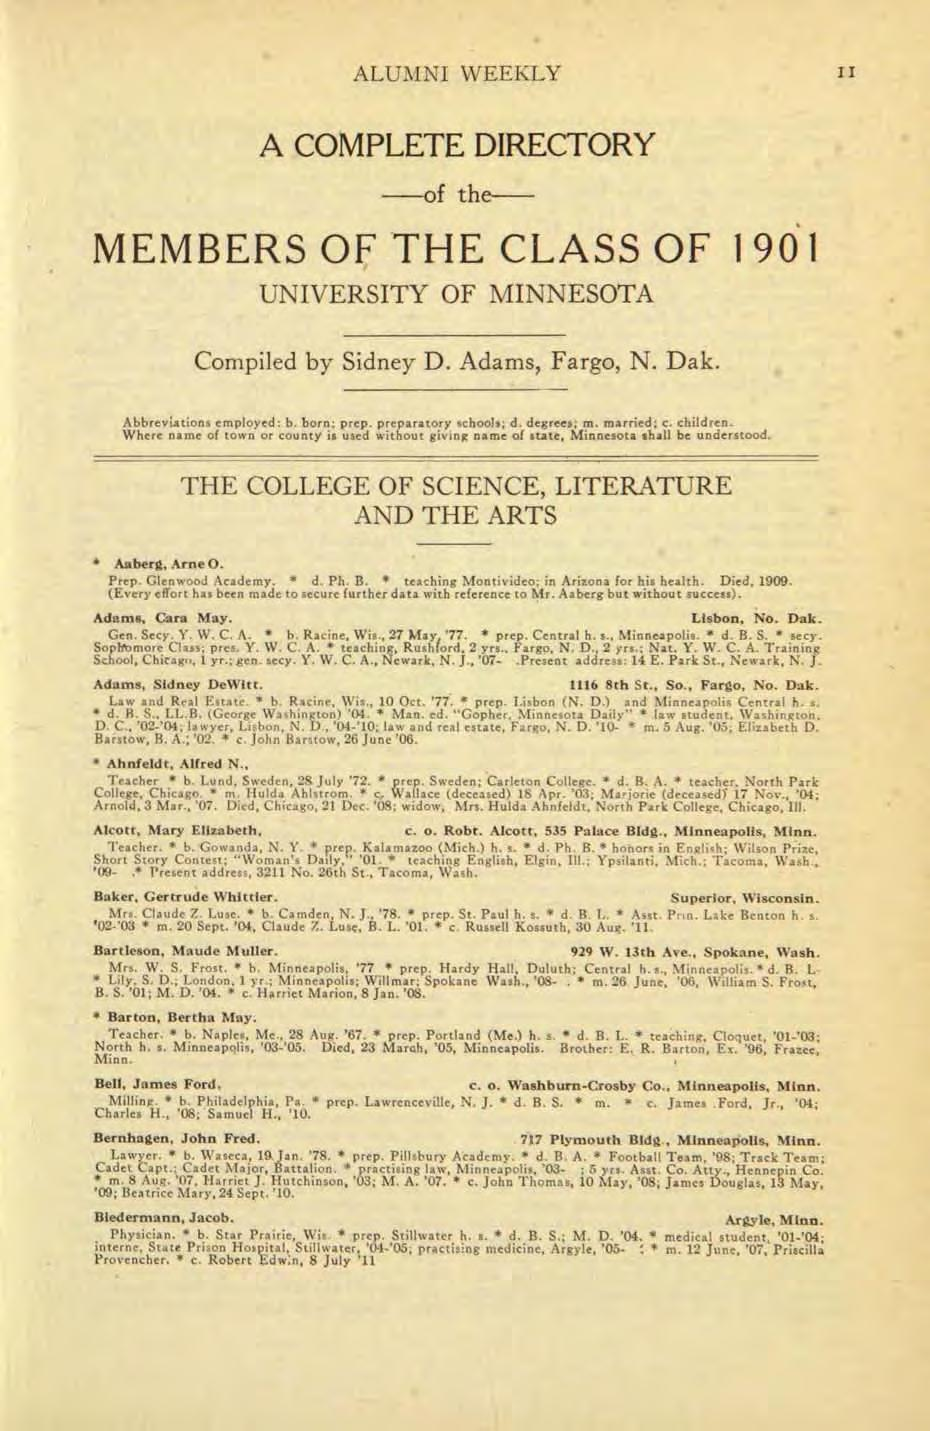 ALU 1NI WEEKLY II A COMPLETE DIRECTORY -of the- MEMBERS OF 'THE CLASS OF 190 1 UNIVERSITY OF MINNESOTA Compiled by Sidney D. Adams 7 Fargo, N. Dak. Abbreviations employed: b. barn: p rep.